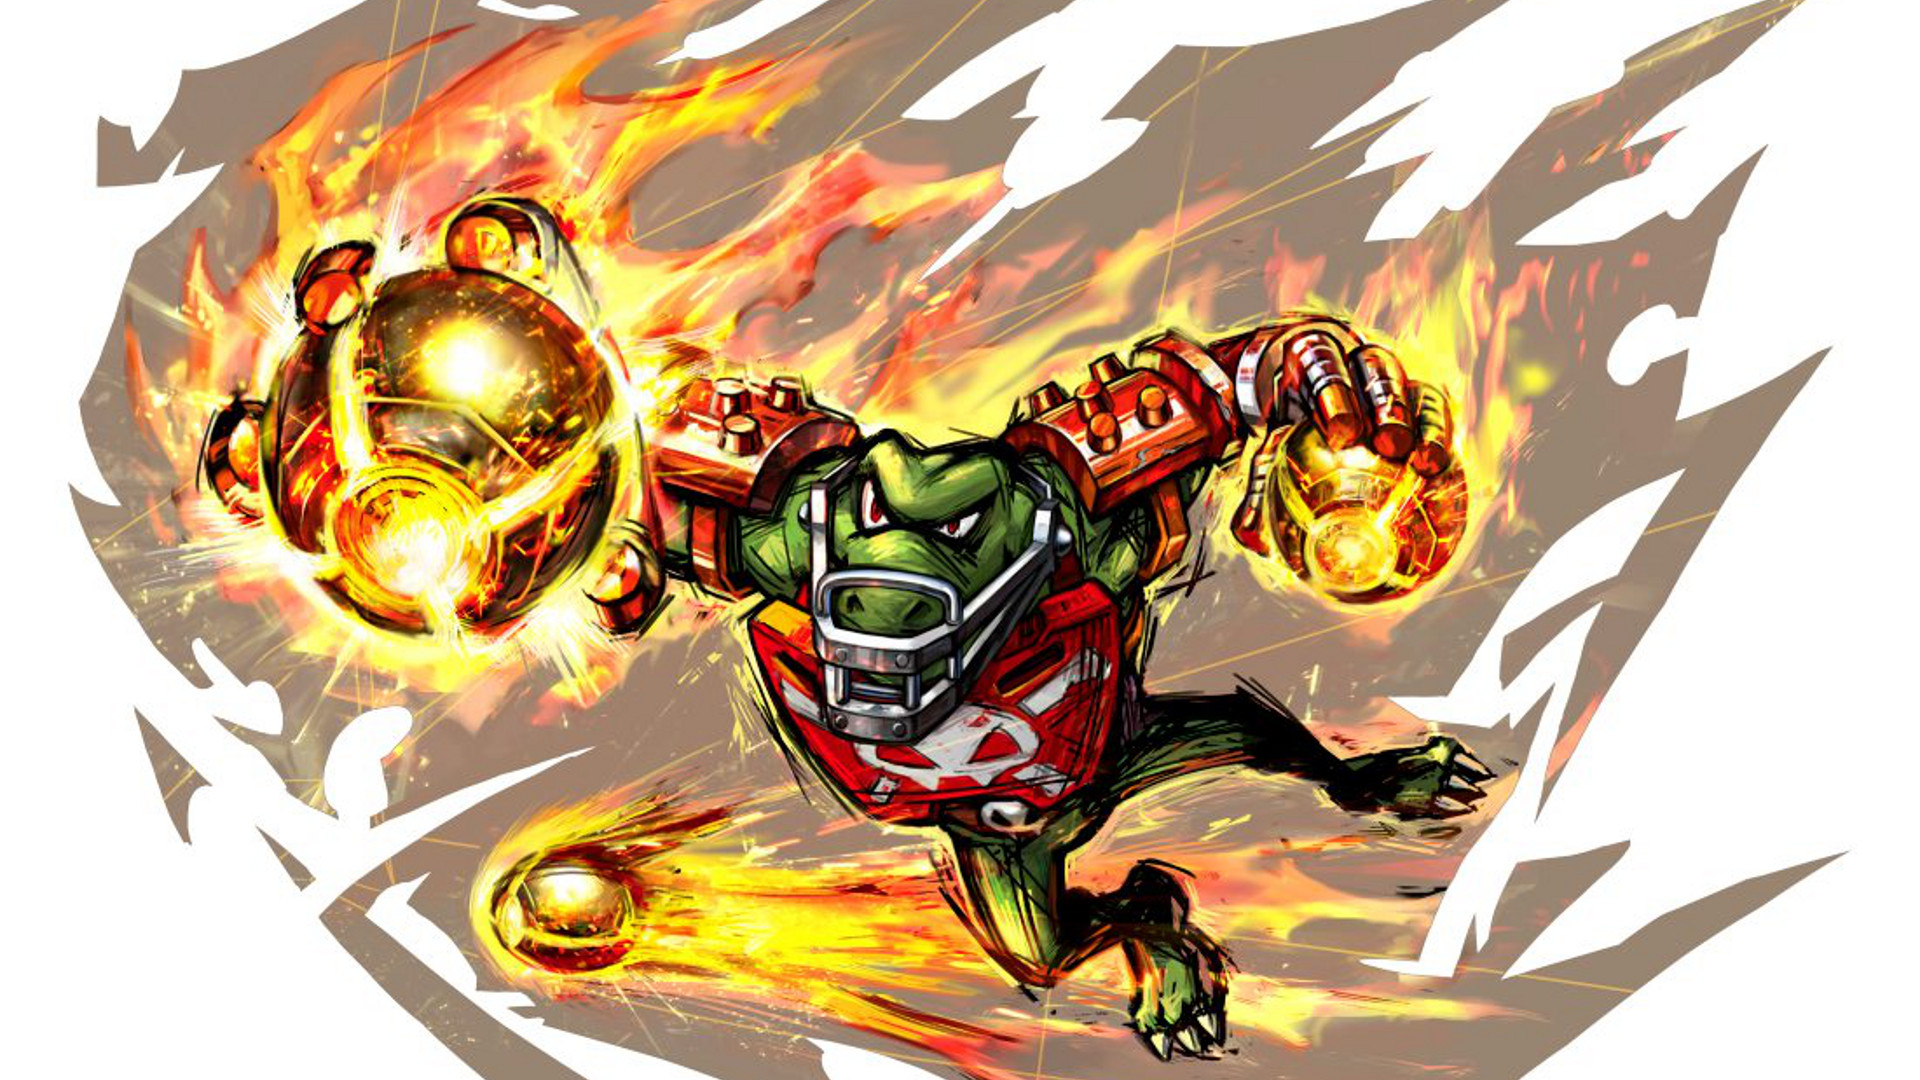 Dk Wallpaper Hd 6 Mario Strikers Charged Hd Wallpapers Backgrounds